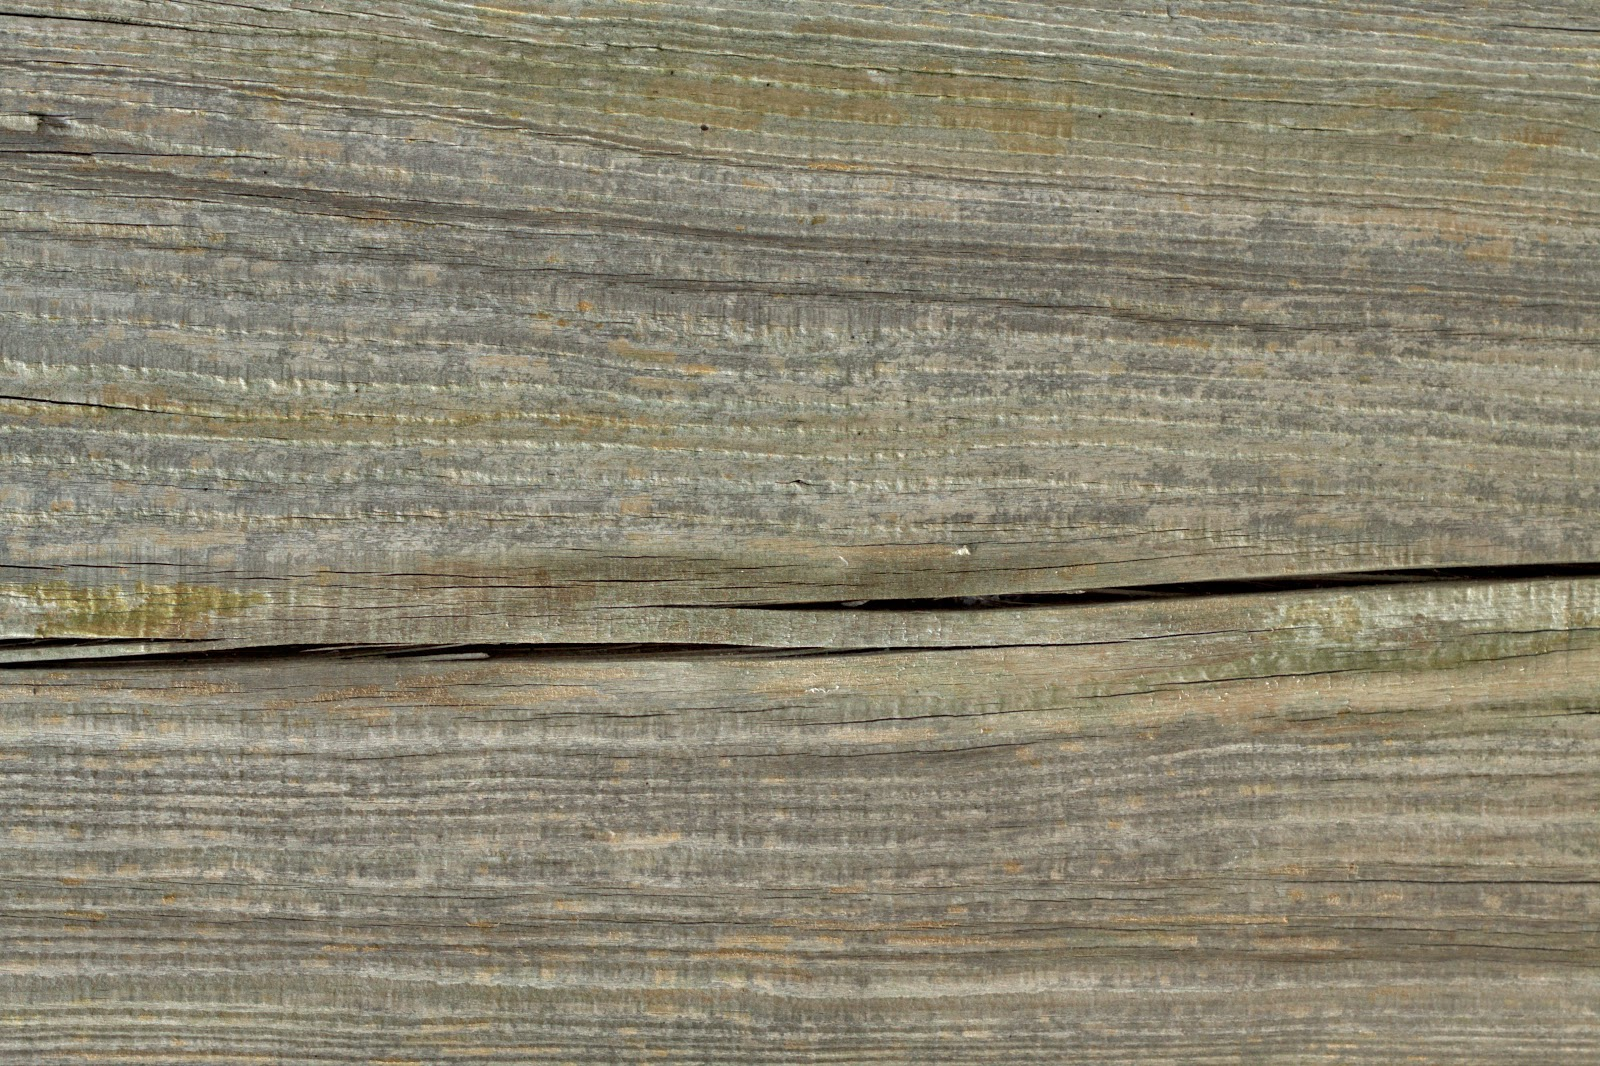 (Wood 26) dry cracked plank tree bark texture 4770x3178